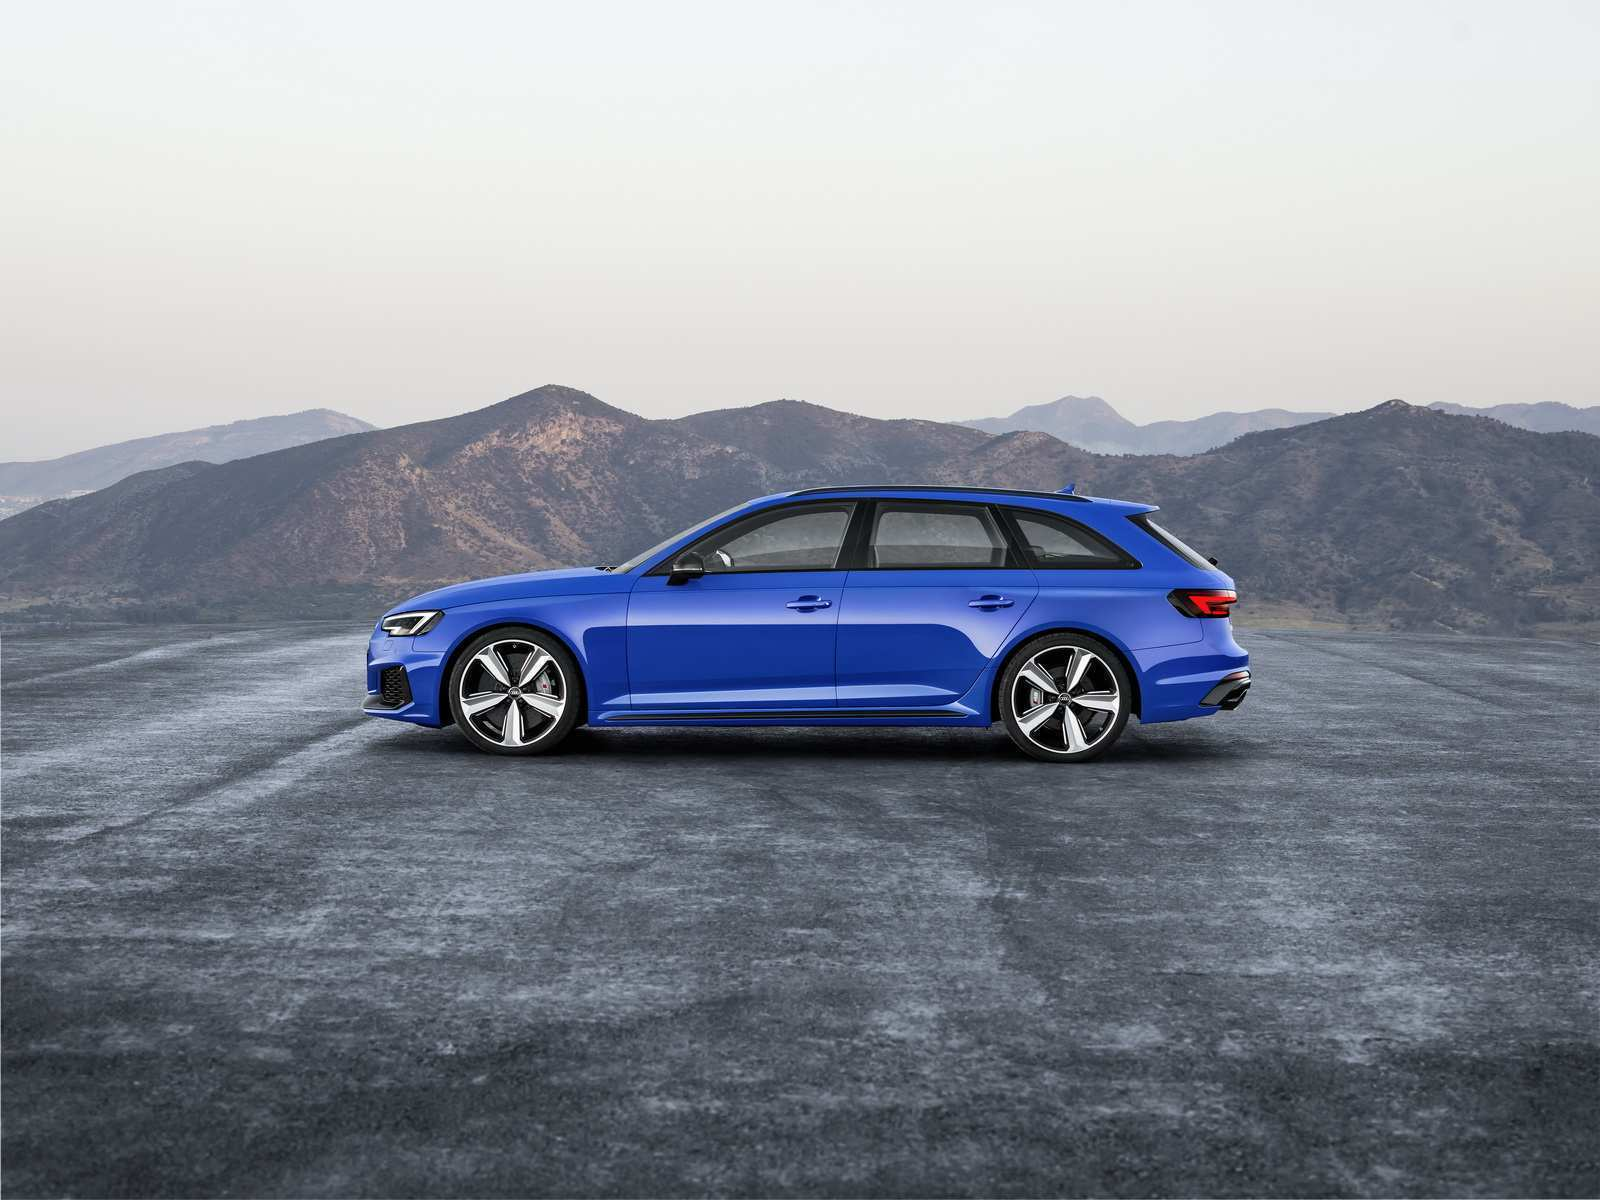 56 The Best 2019 Audi Rs4 Images